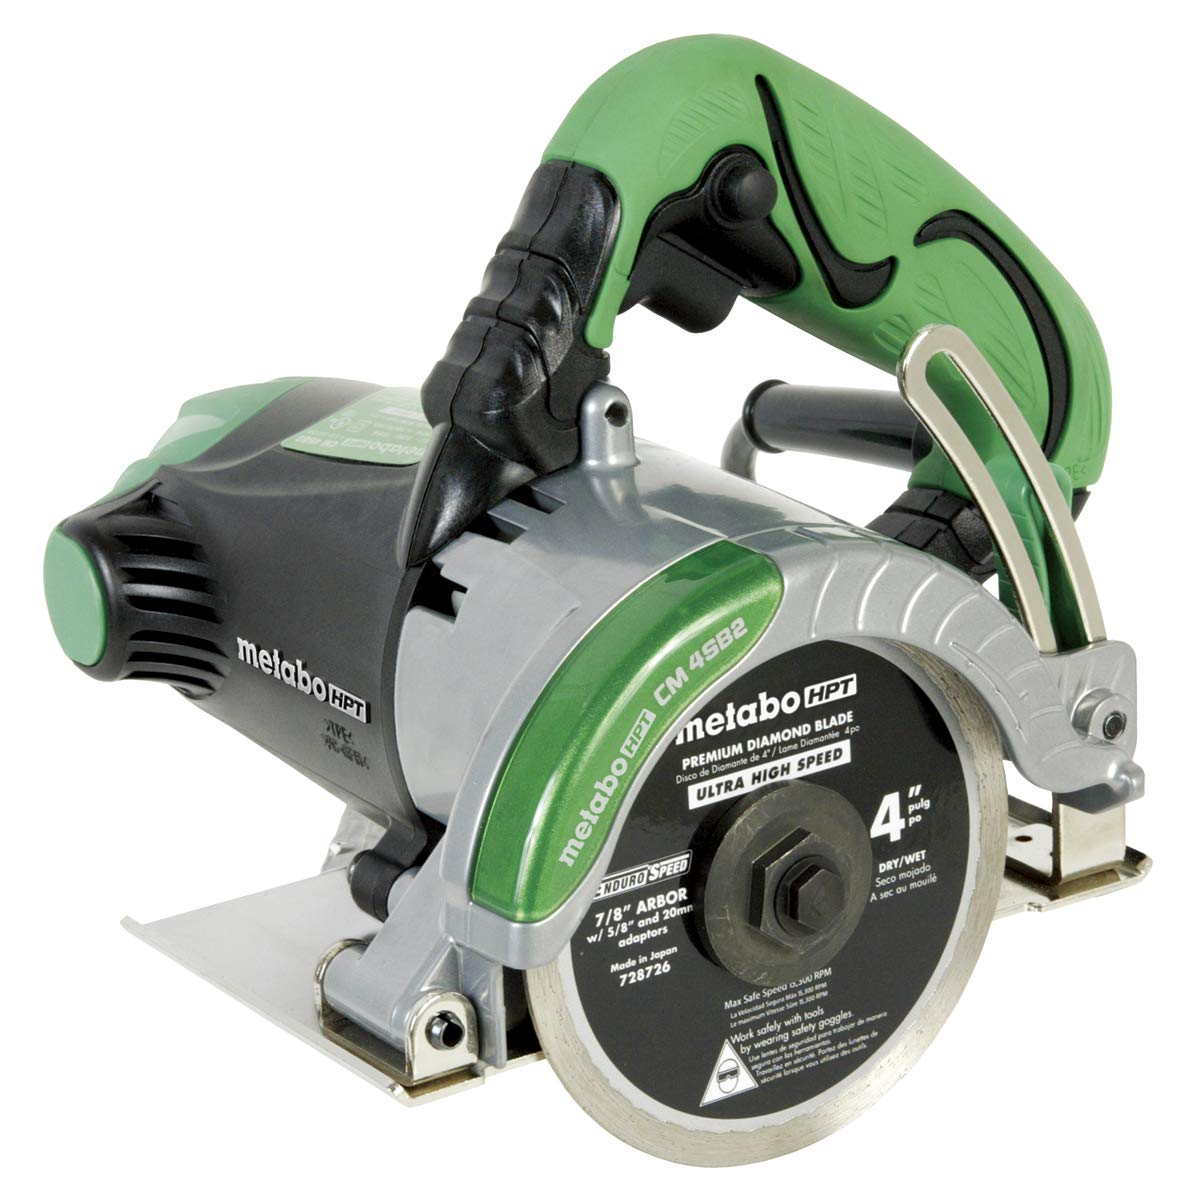 Metabo HPT CM4SB2 Handheld 4-Inch Dry Cut Masonry Saw, Includes 4-Inch Diamond Blade, Cuts Pavers, Concrete, Tile and More, 11.6-Amp Motor, Soft Grip Handle, Compact and Lightweight, 1-Year Warranty